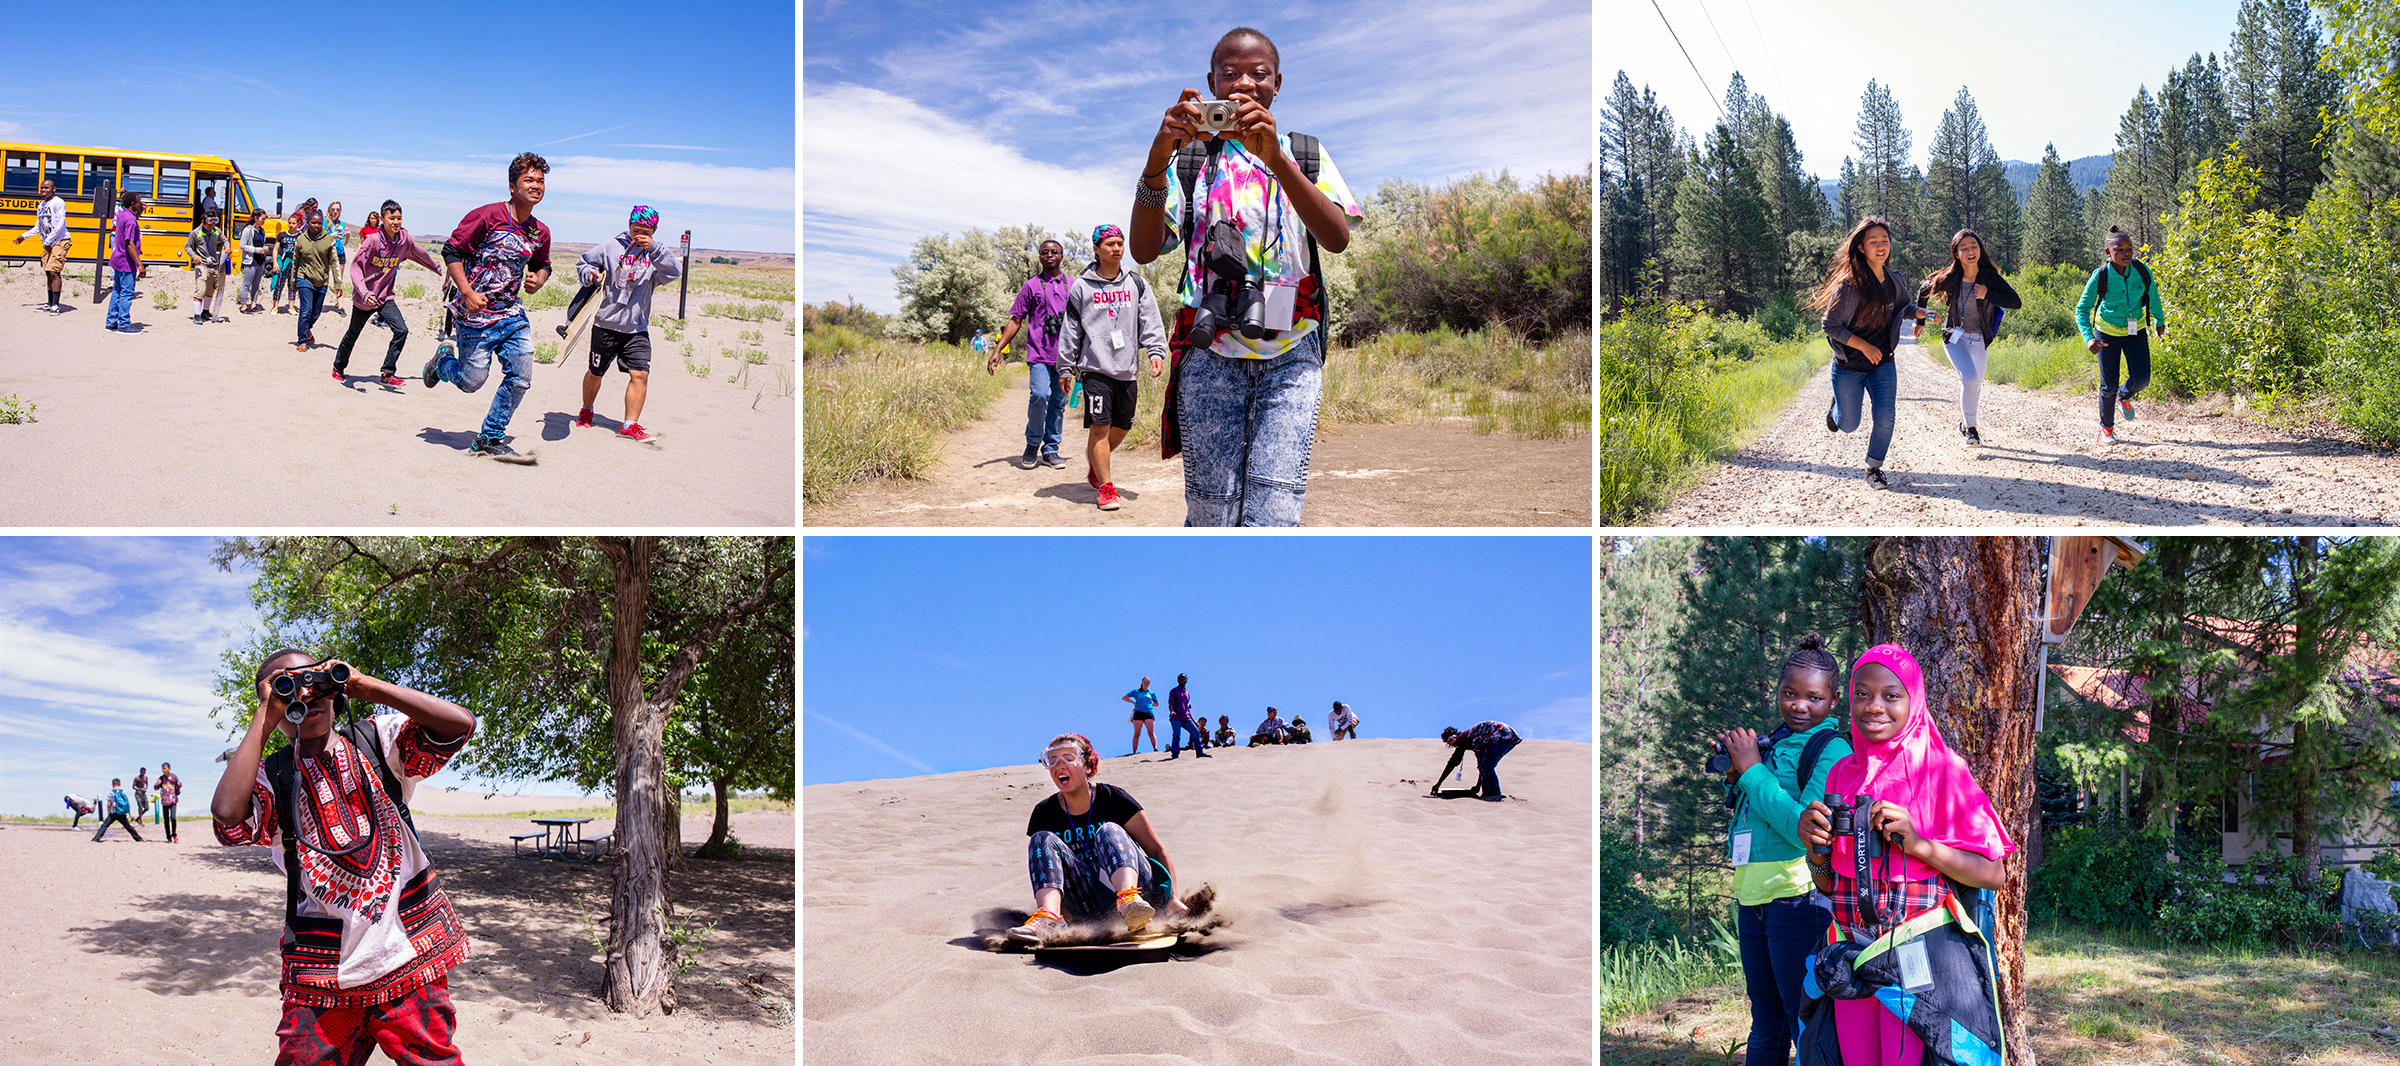 The New Roots campers came ready to explore and play in the diverse ecosystems within an hour of their home in Boise, Idaho. Photos: Mike Fernandez/Audubon